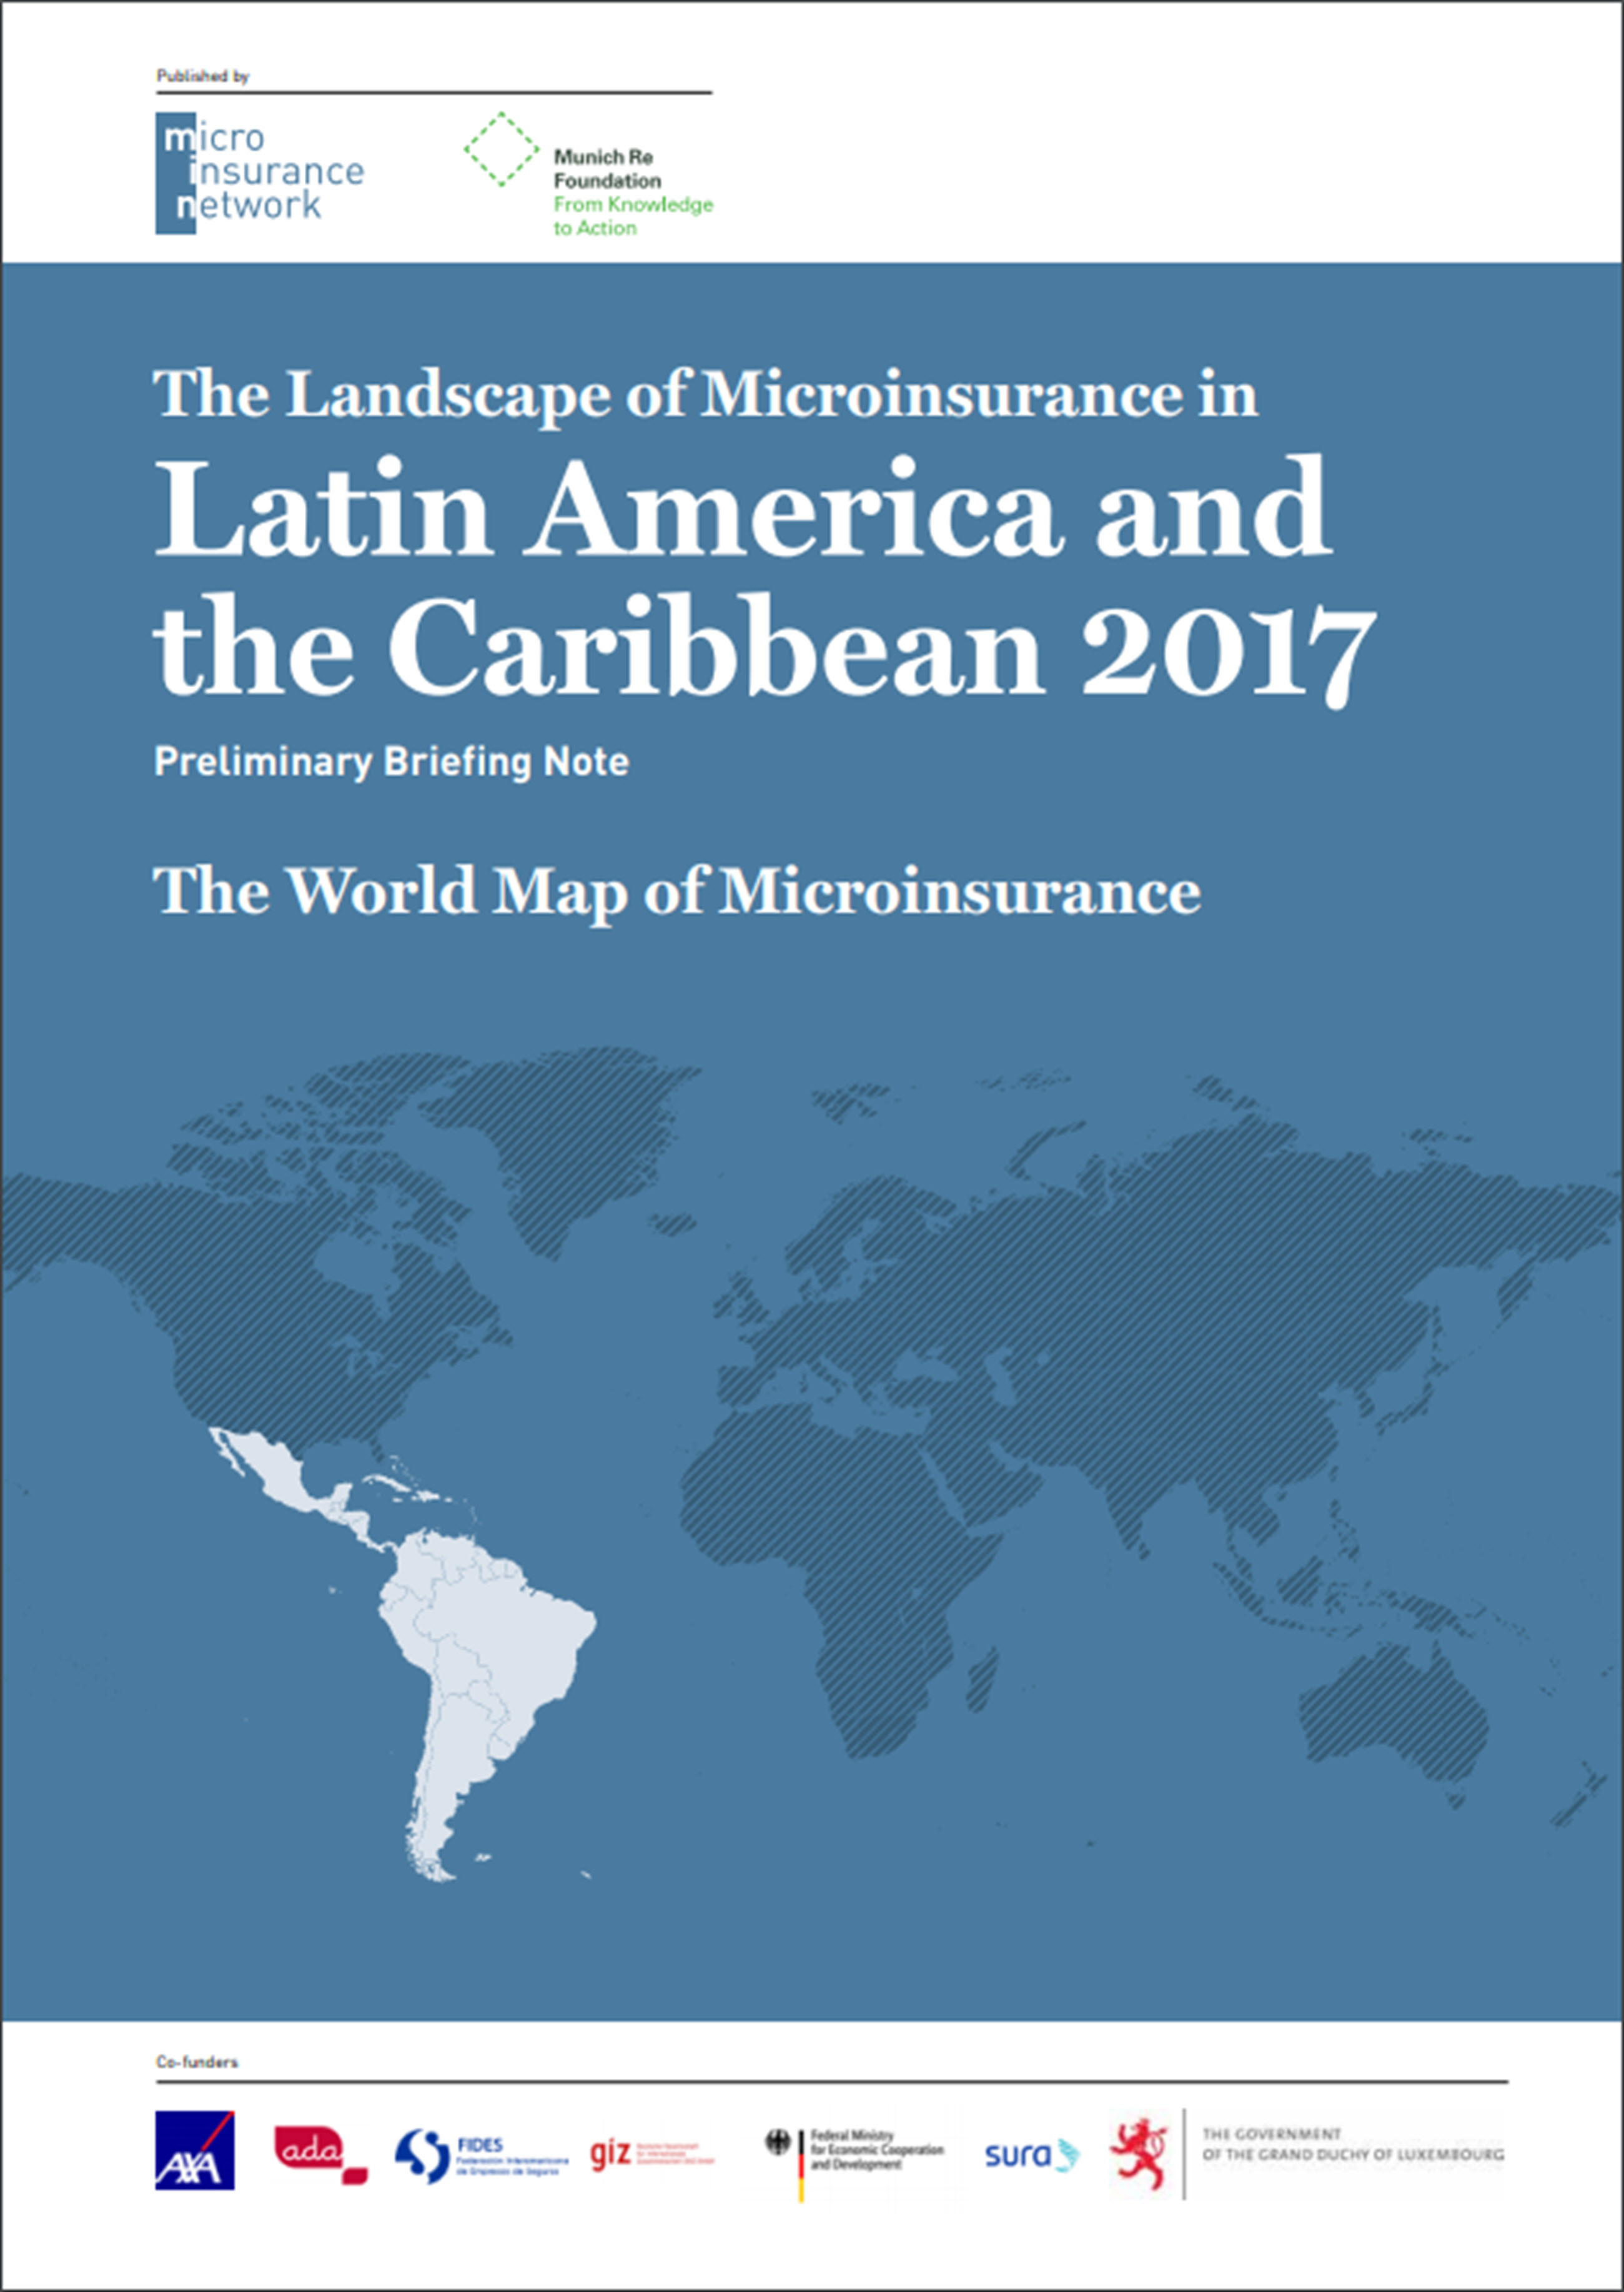 2017_Landscape study LA and the Caribbean_Briefing Note